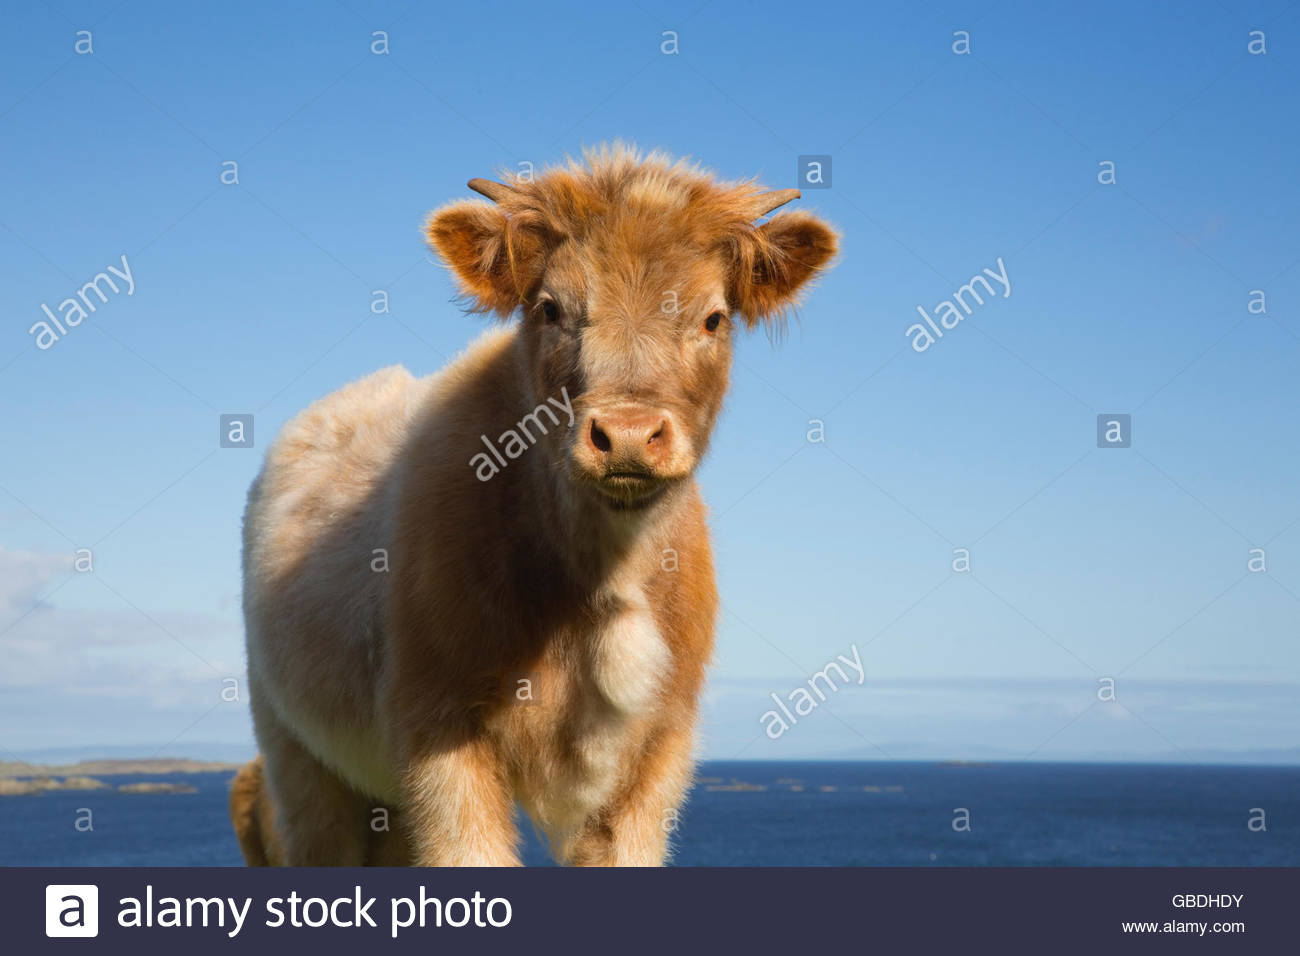 A calf near Port Ellen on the Isle of Islay, Inner Hebrides, Scotland. - Stock Image